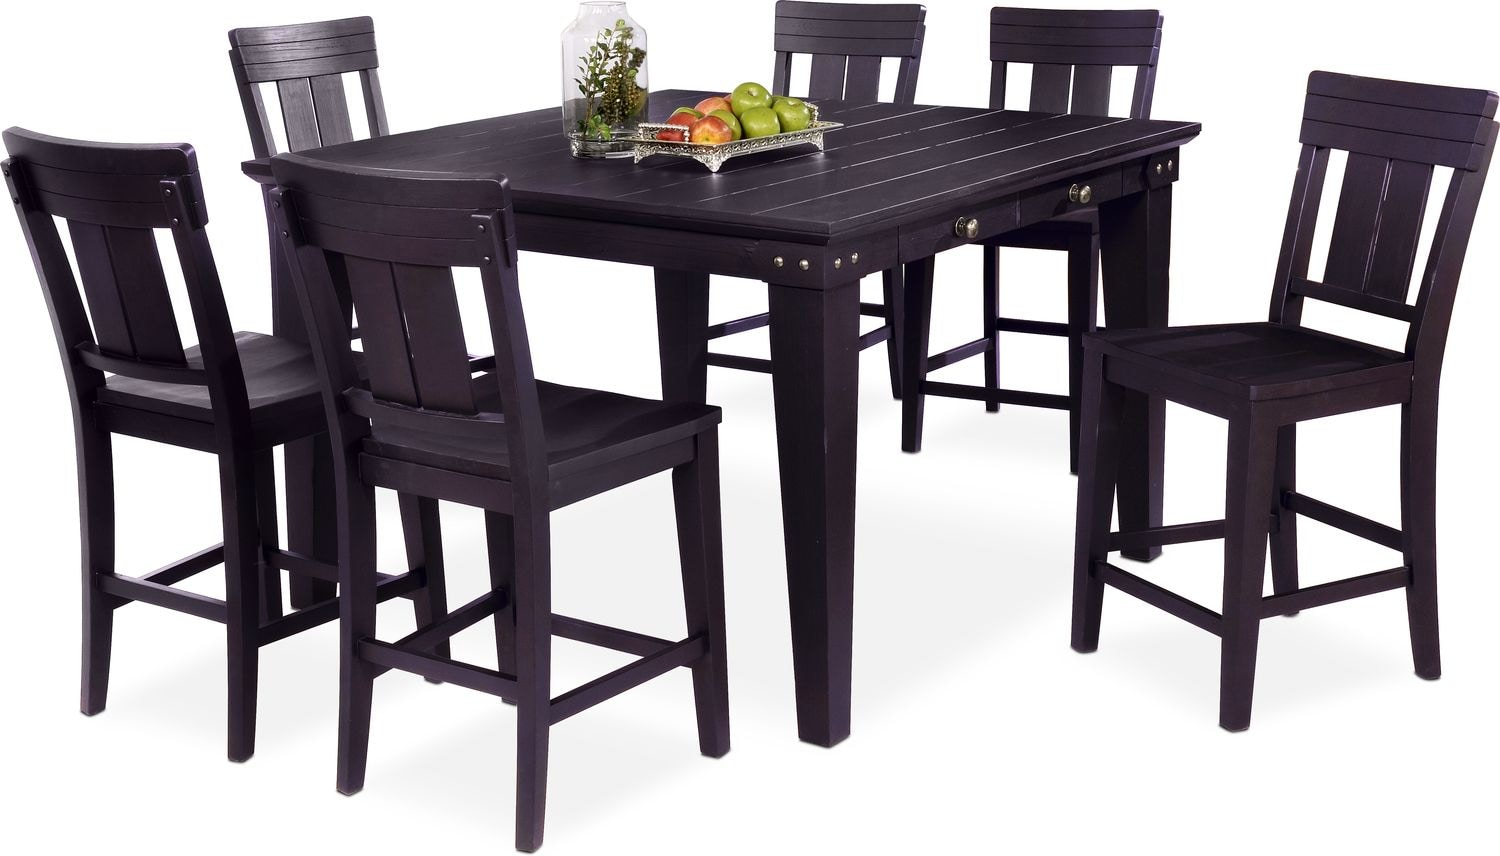 The New Haven Counter-Height Dining Collection